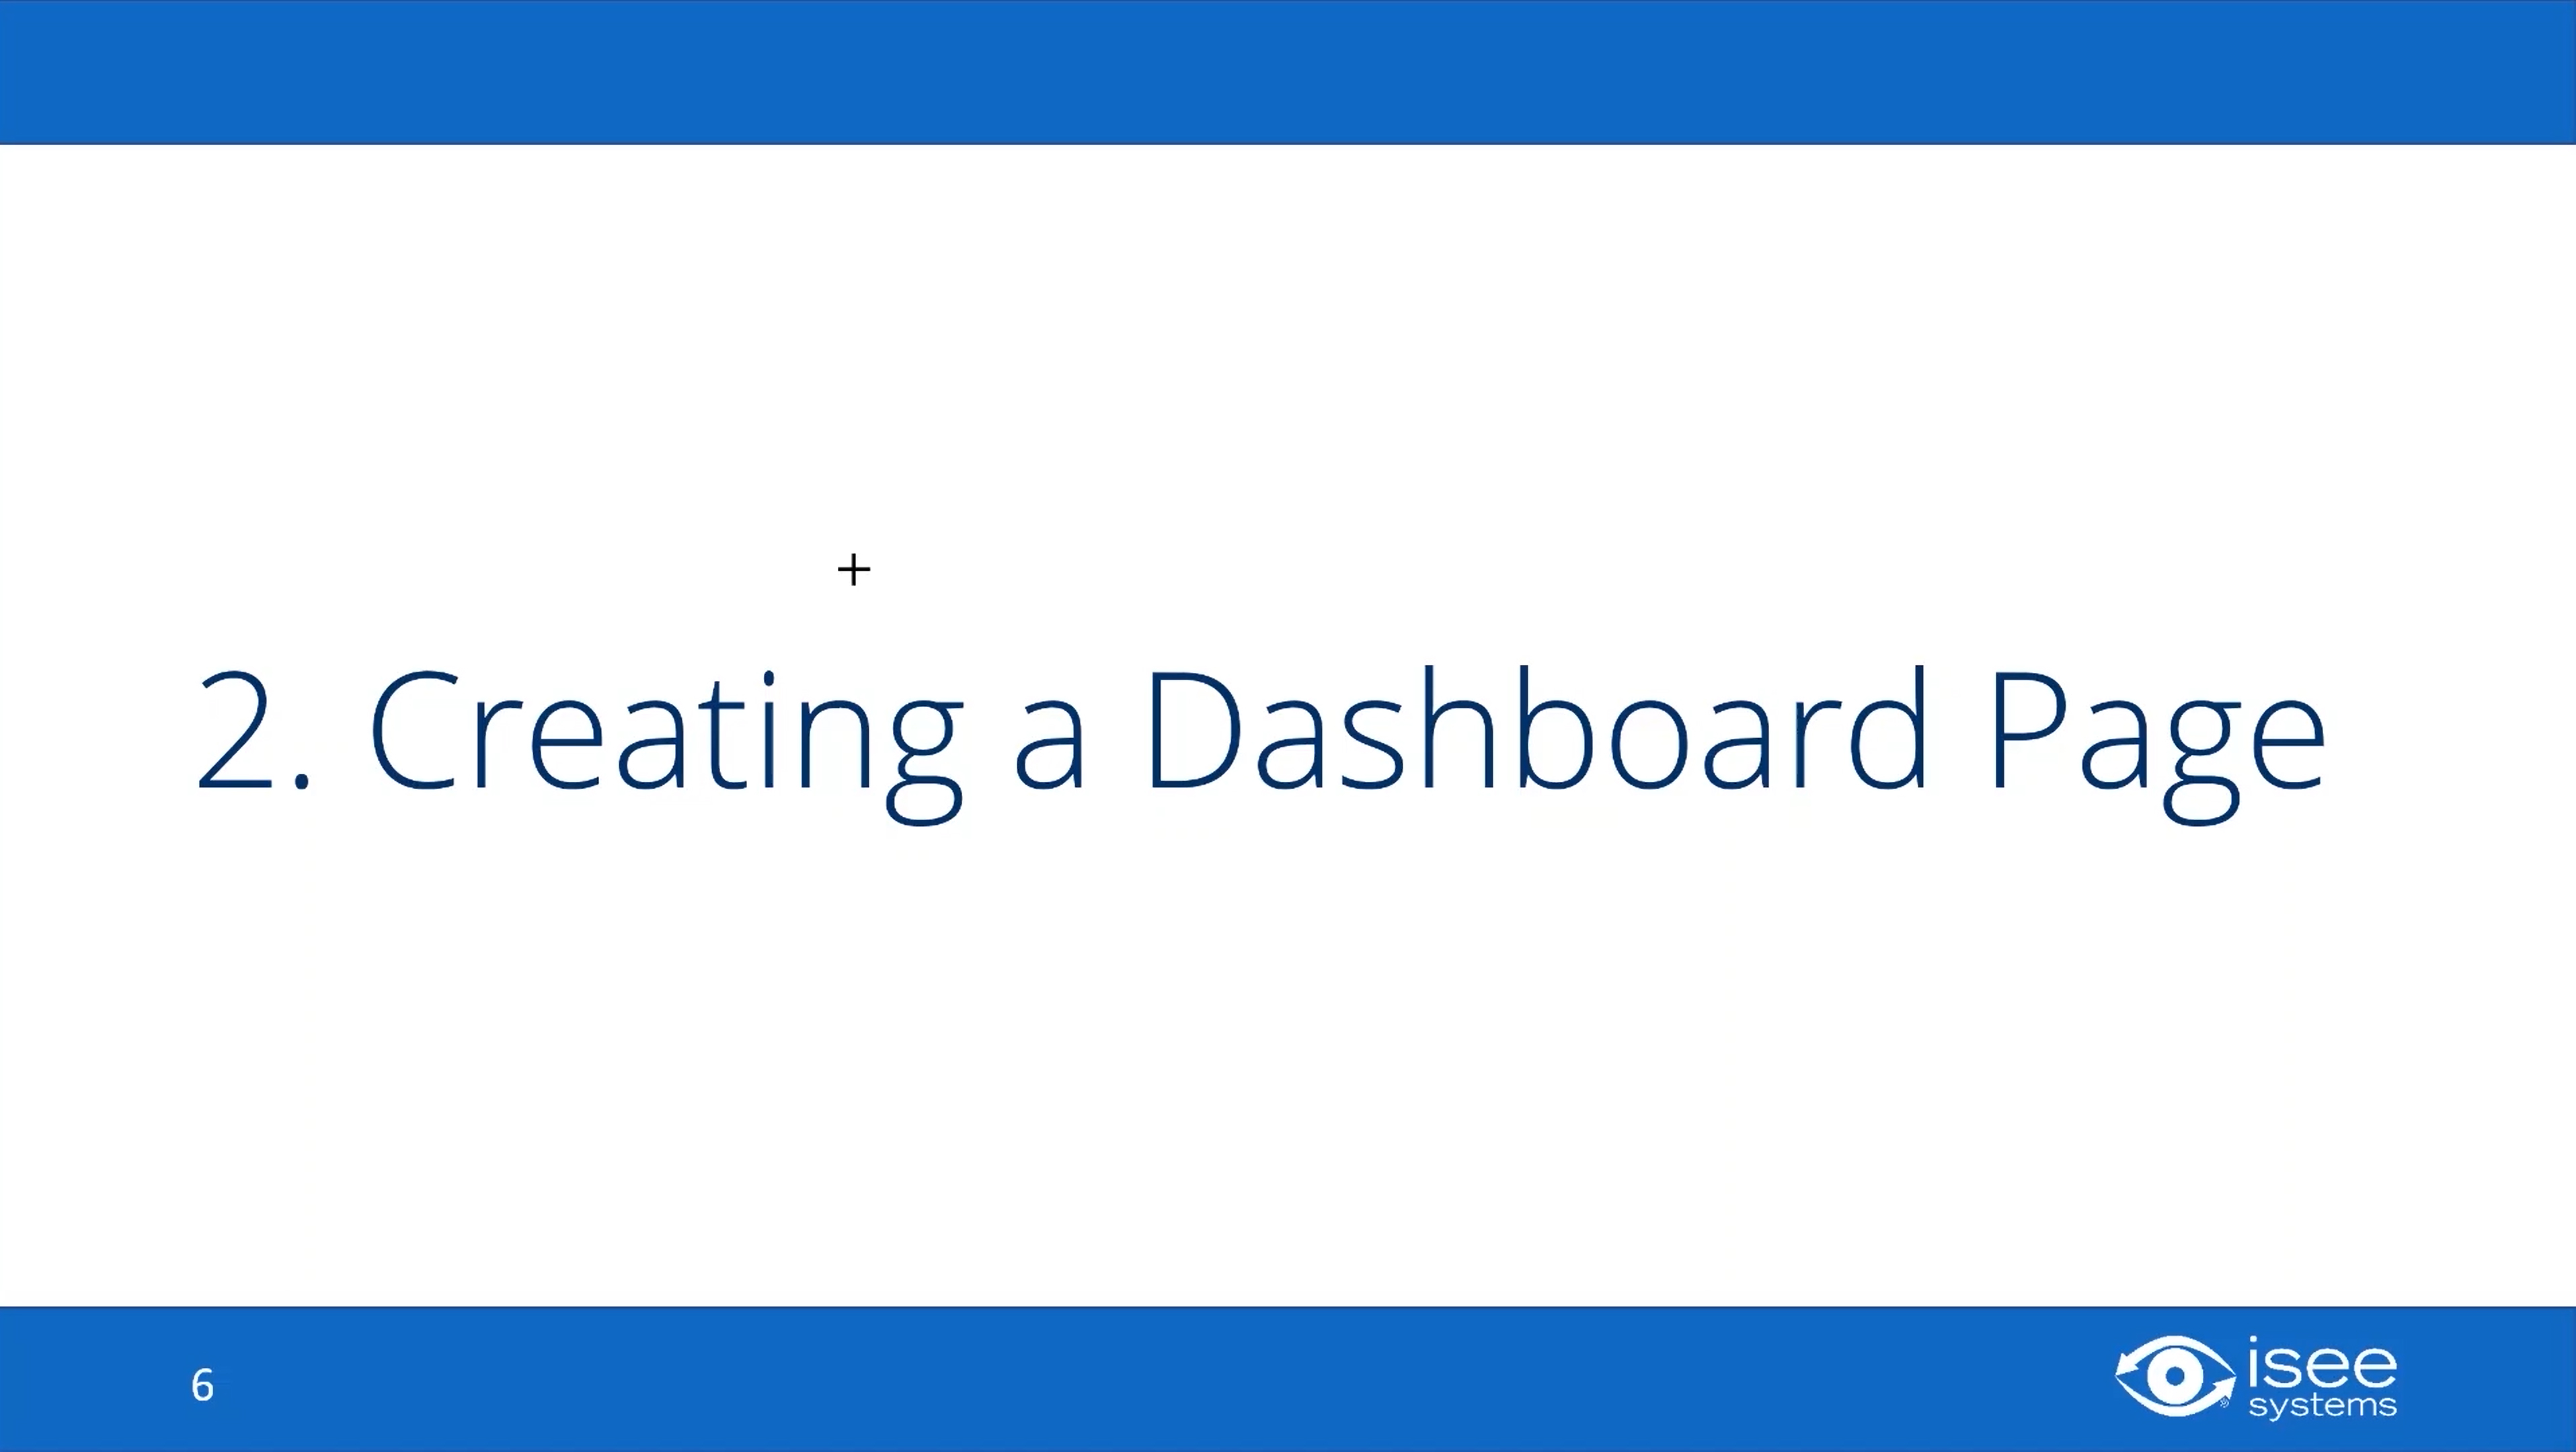 Creating a Dashboard Page